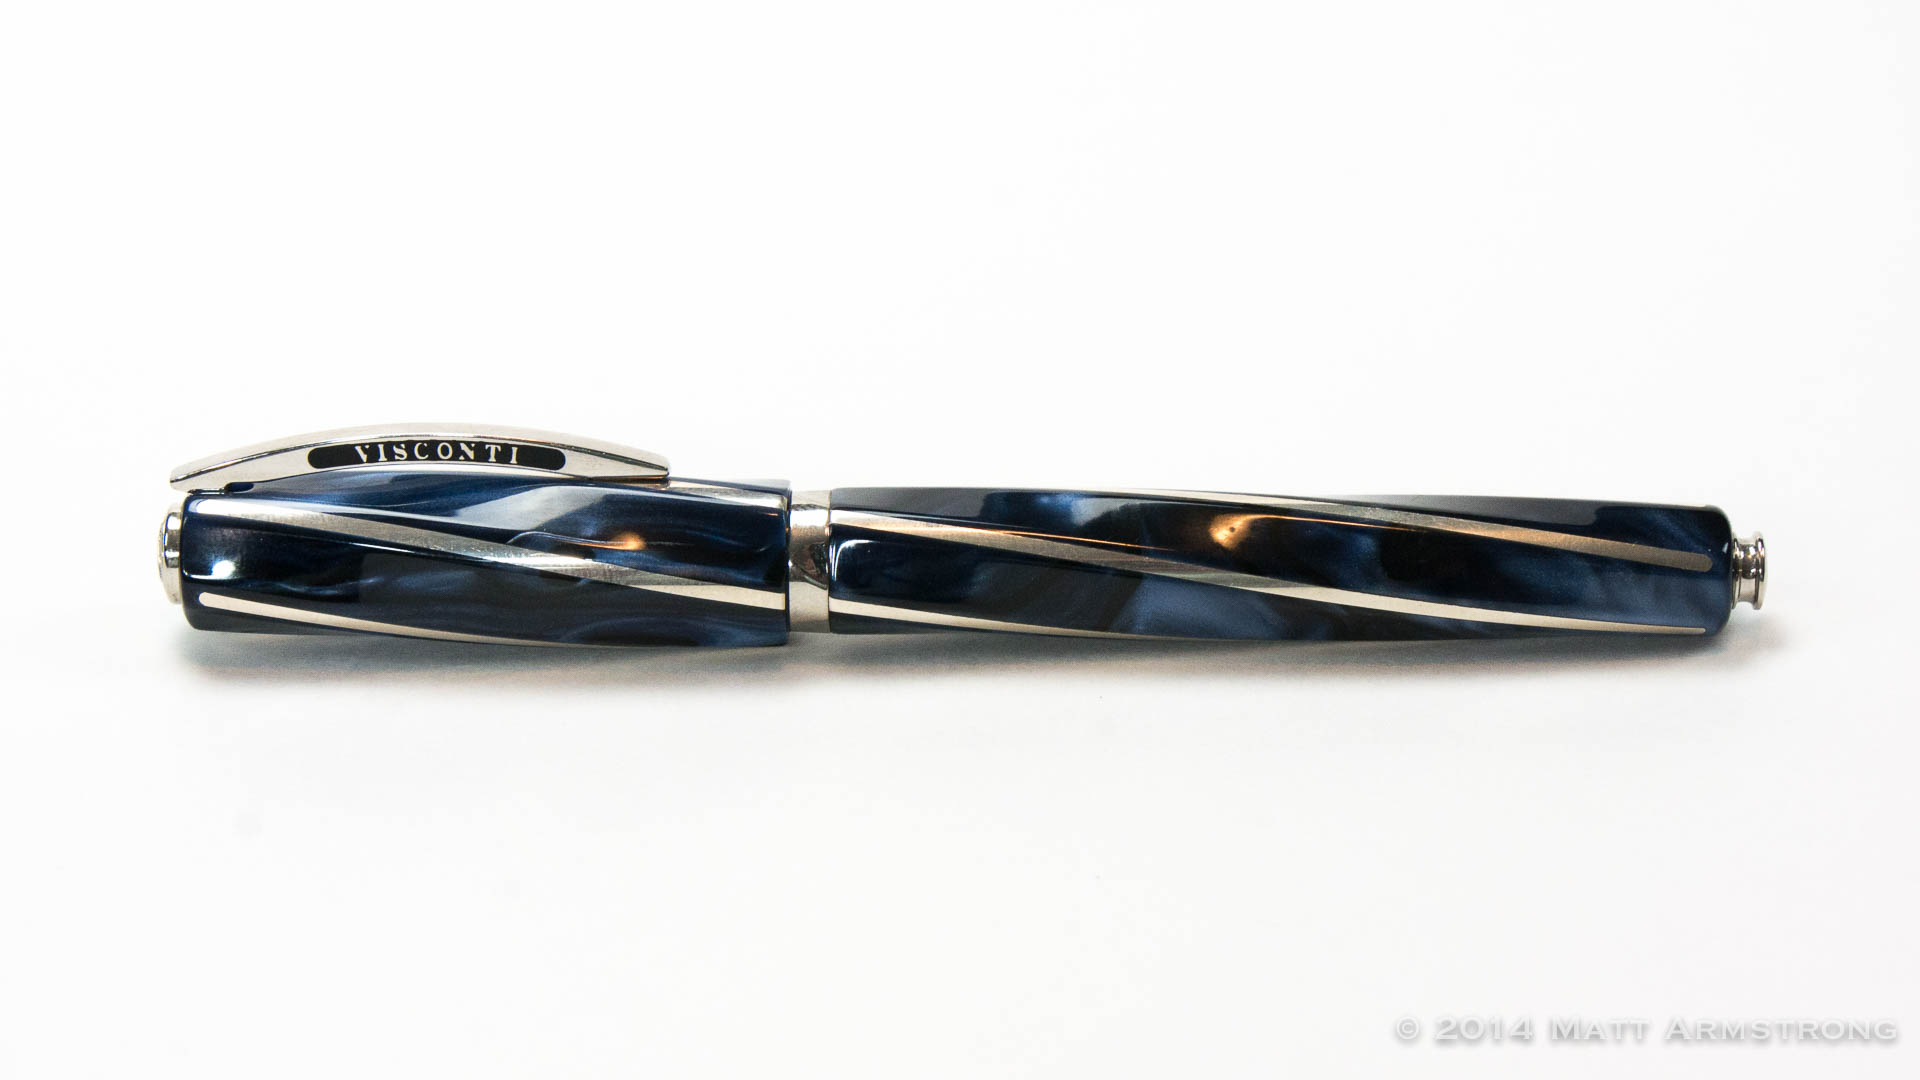 Pen Review: Visconti Divina Elegance Maxi (Blue)